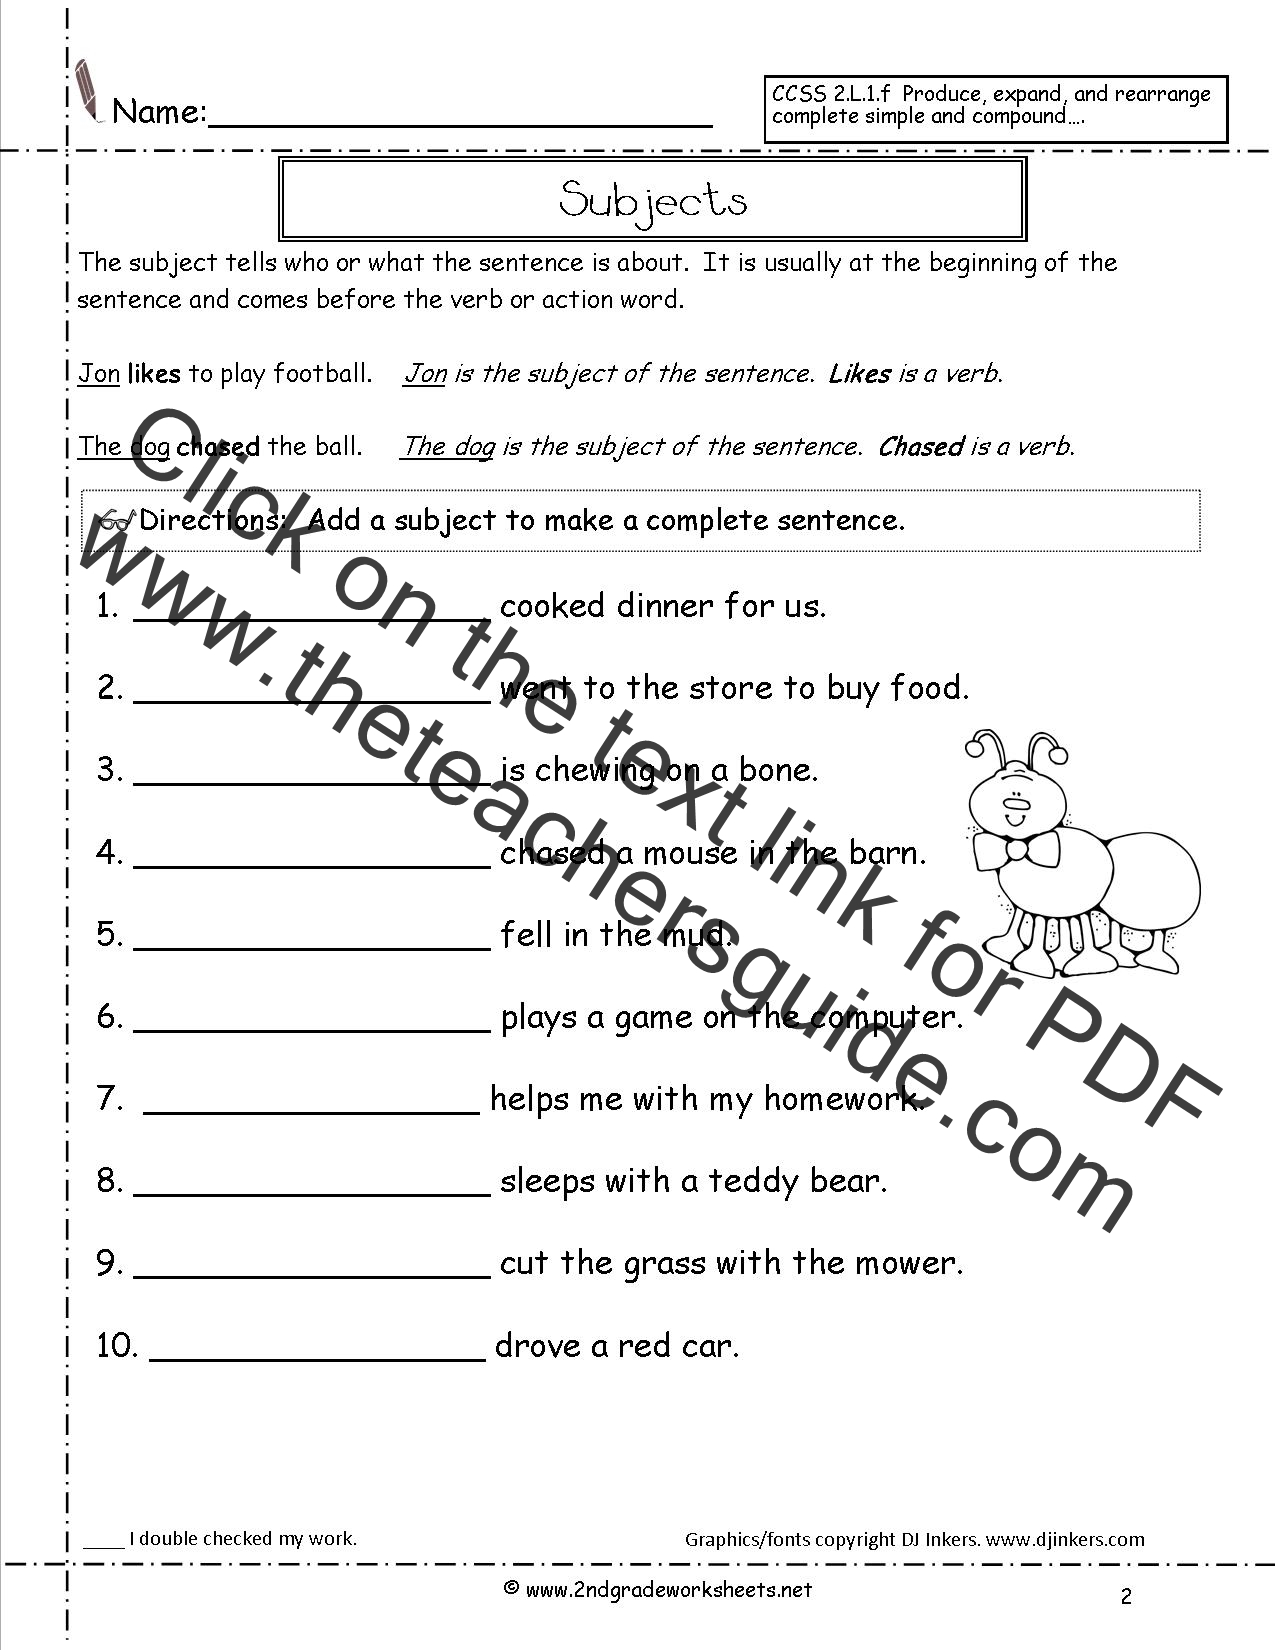 Worksheets Number Sentence Worksheets 2nd Grade second grade sentences worksheets ccss 2 l 1 f subjects worksheet sentence subjects